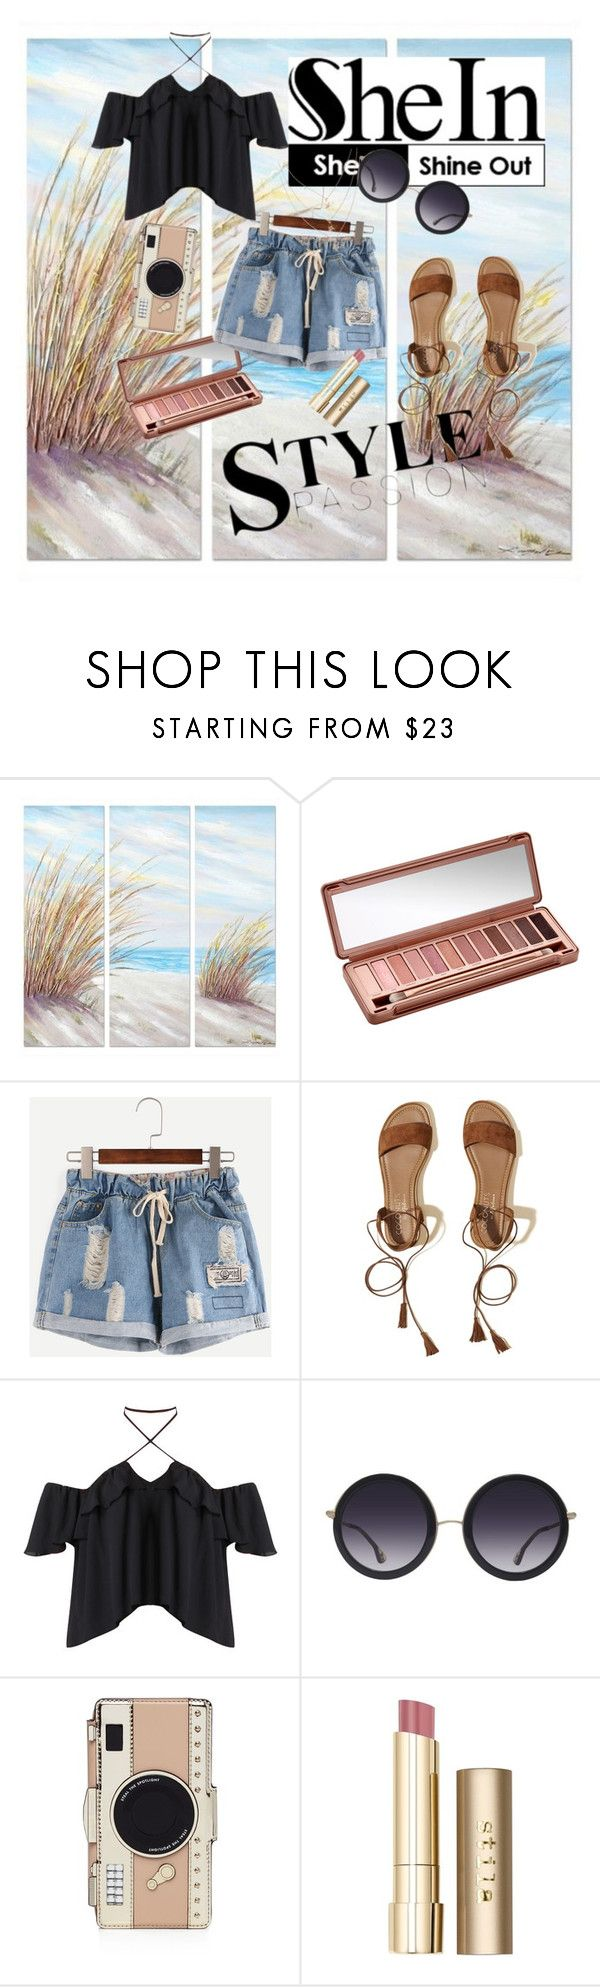 """Denim Short Style"" by sofia-881 ❤ liked on Polyvore featuring Yosemite Home Décor, Urban Decay, Hollister Co., Alice + Olivia, Kate Spade and Stila"